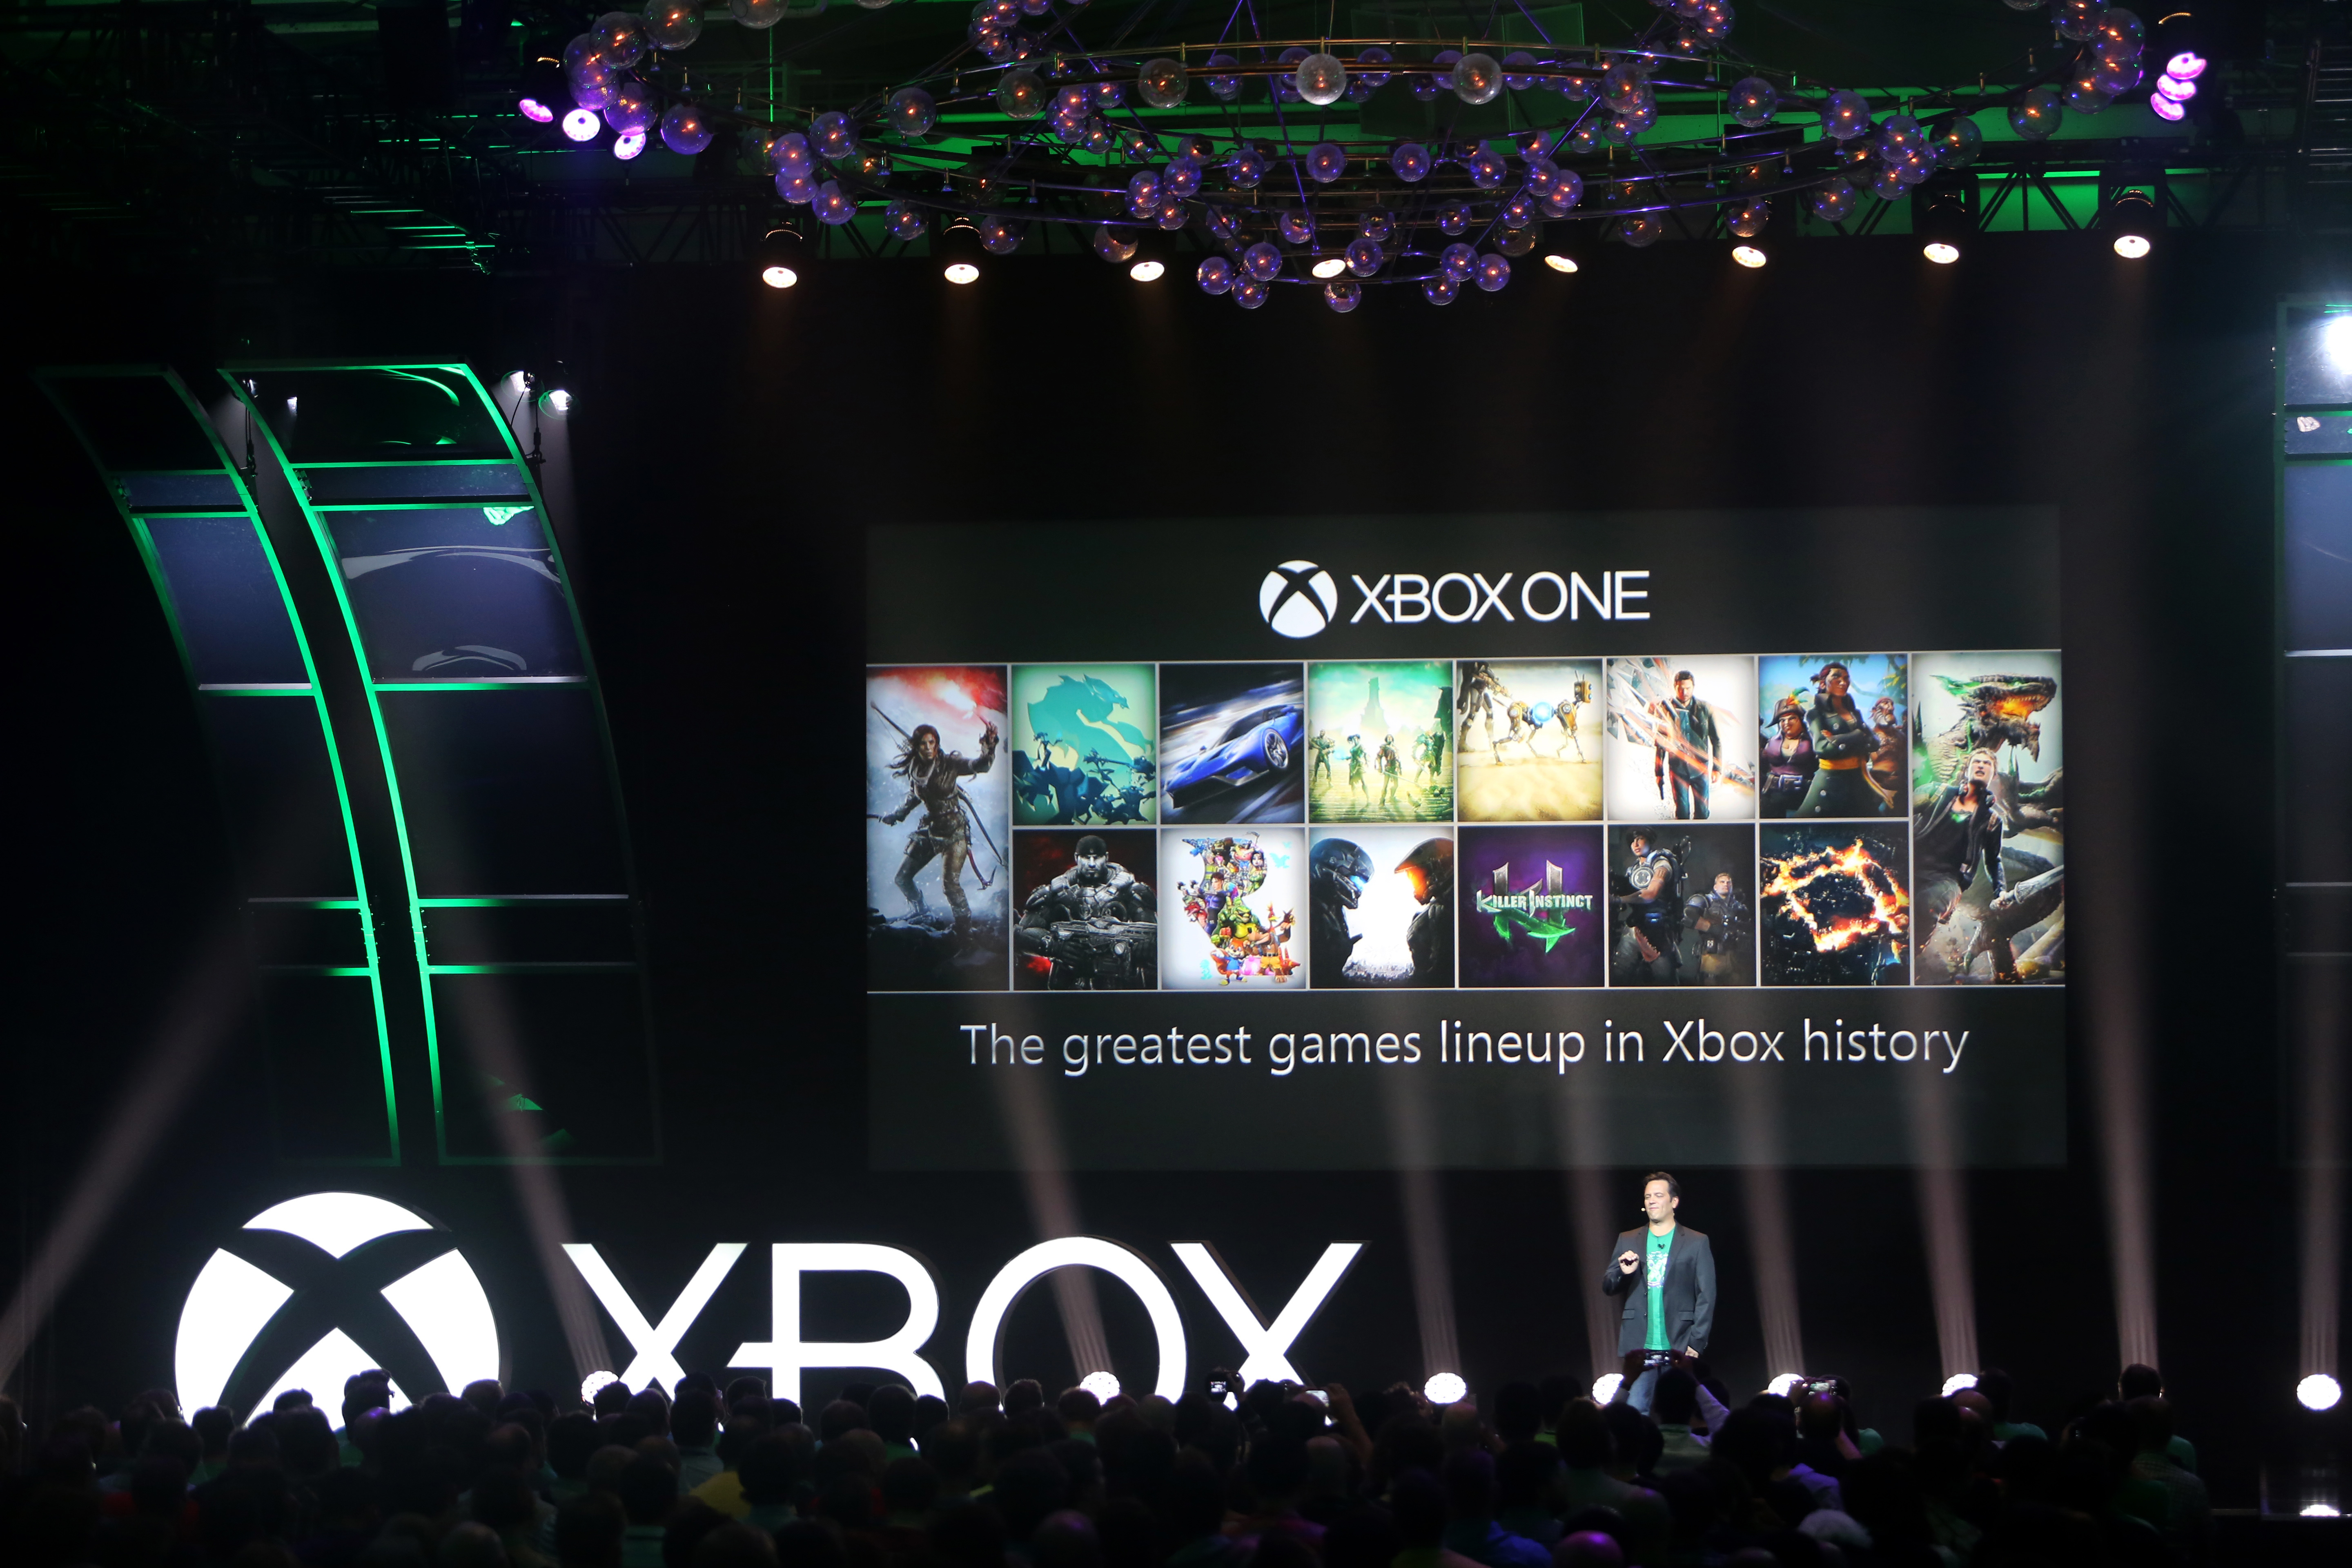 Phil Spencer on stage at Gamescom 2015